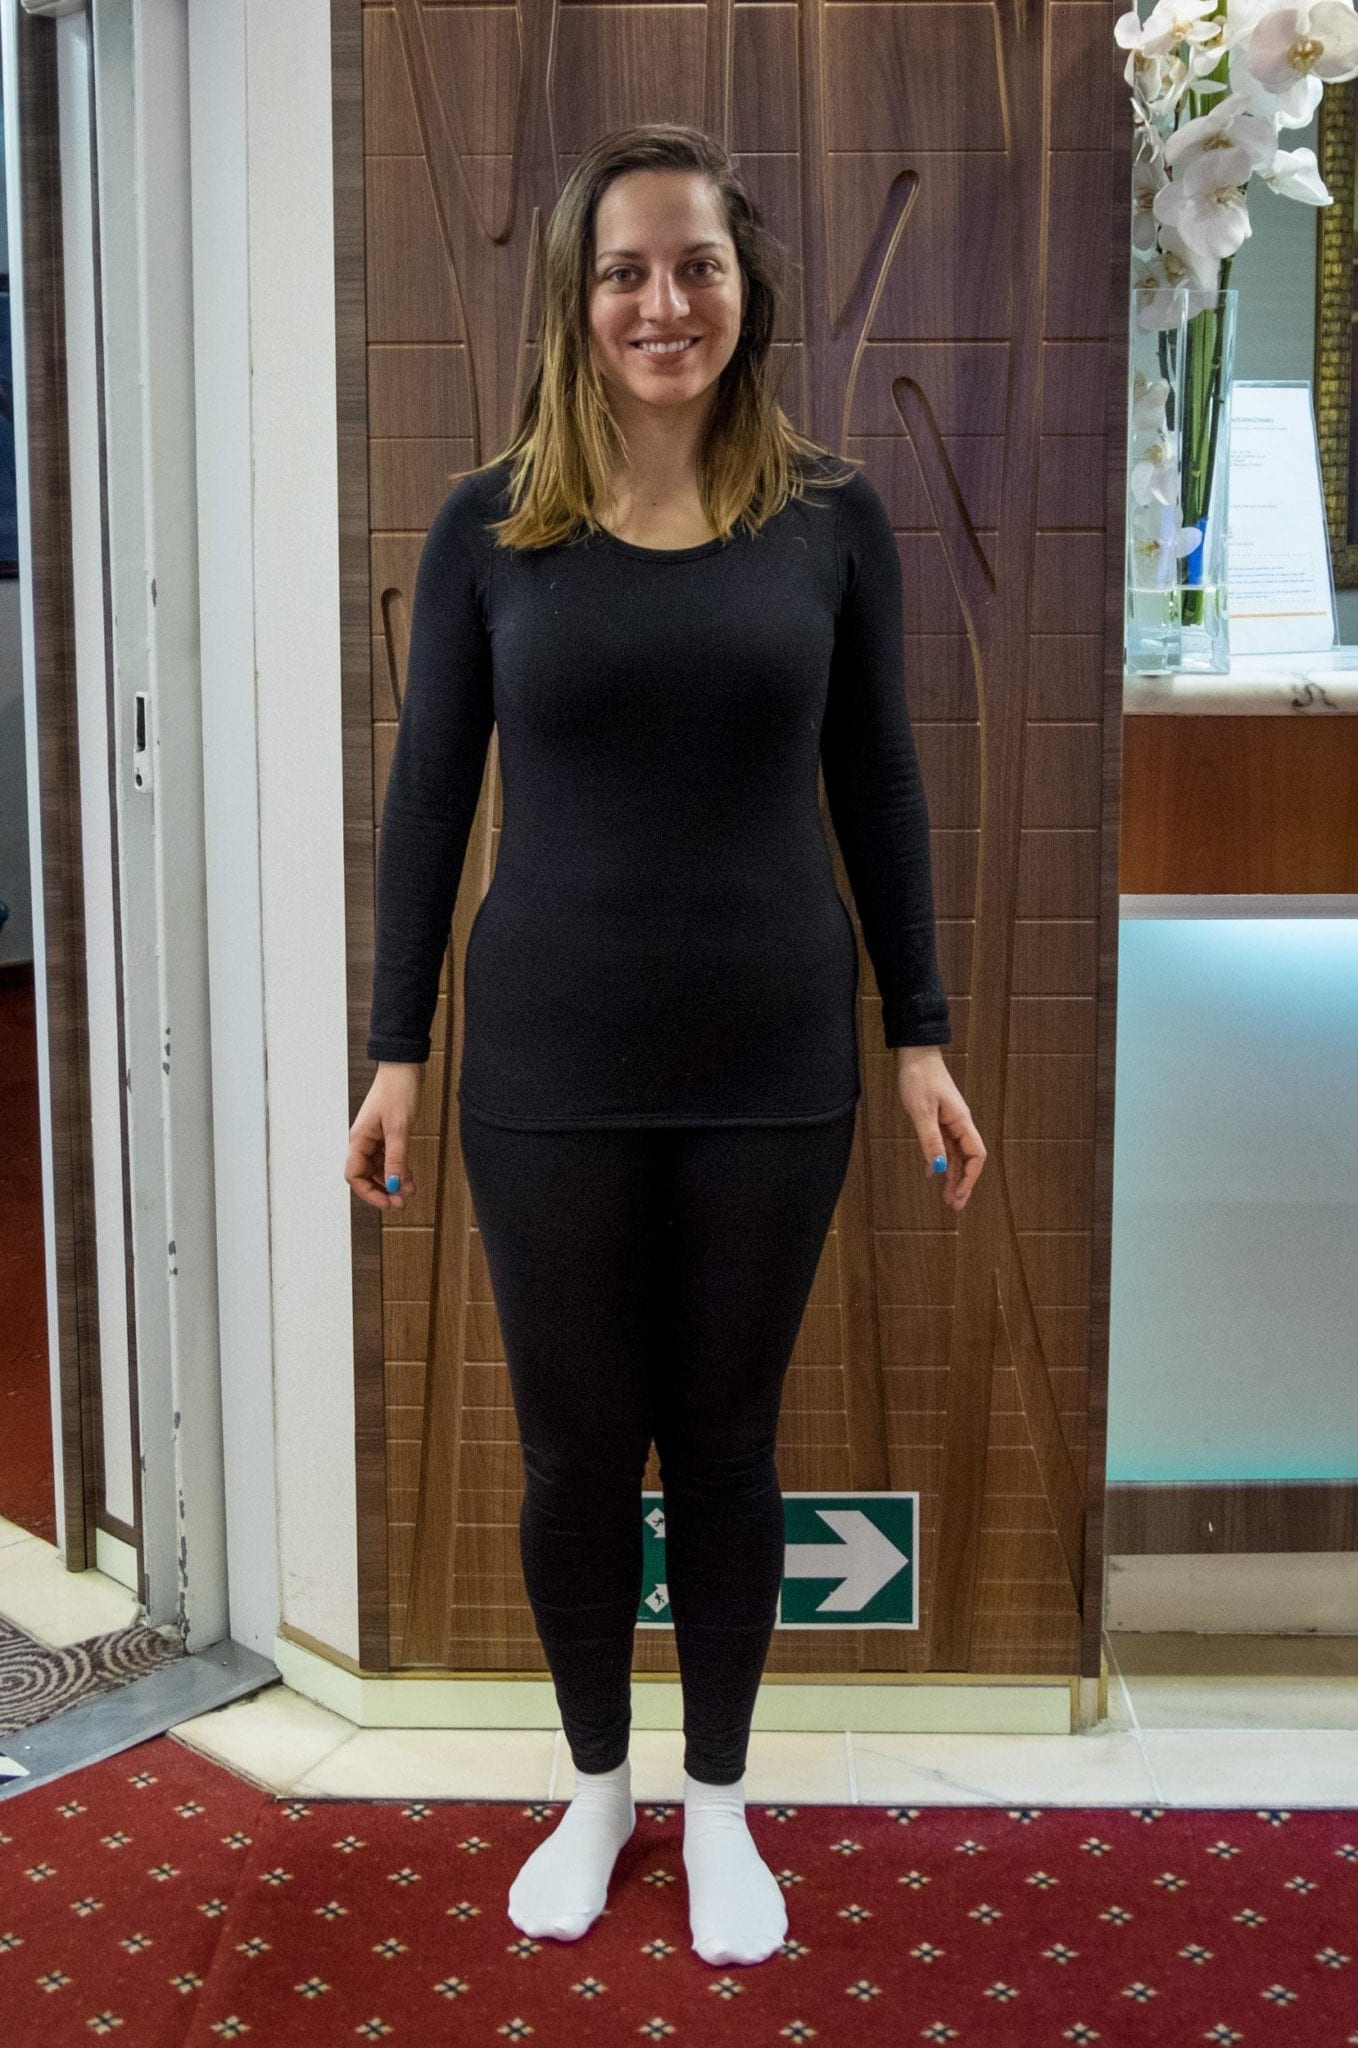 a51433f9979071 BASE LAYER: On top of my underwear and bra, I wore a Uniqlo Warmest Base  Layer top, Uniqlo Warmest Base Layer leggings, and Fox River sock liners.